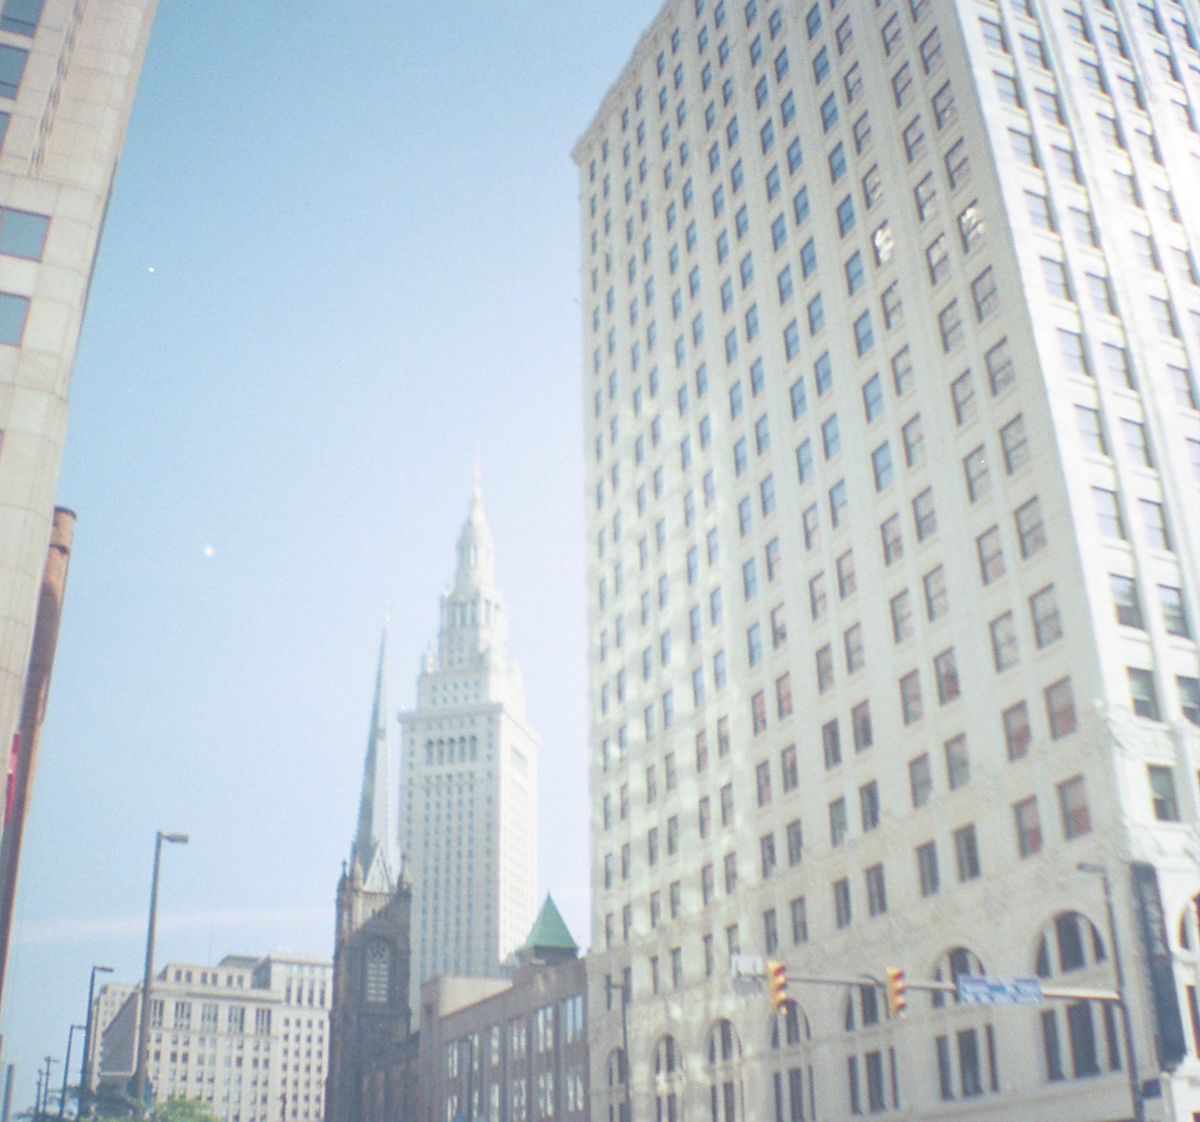 photos of downtown Cleveland